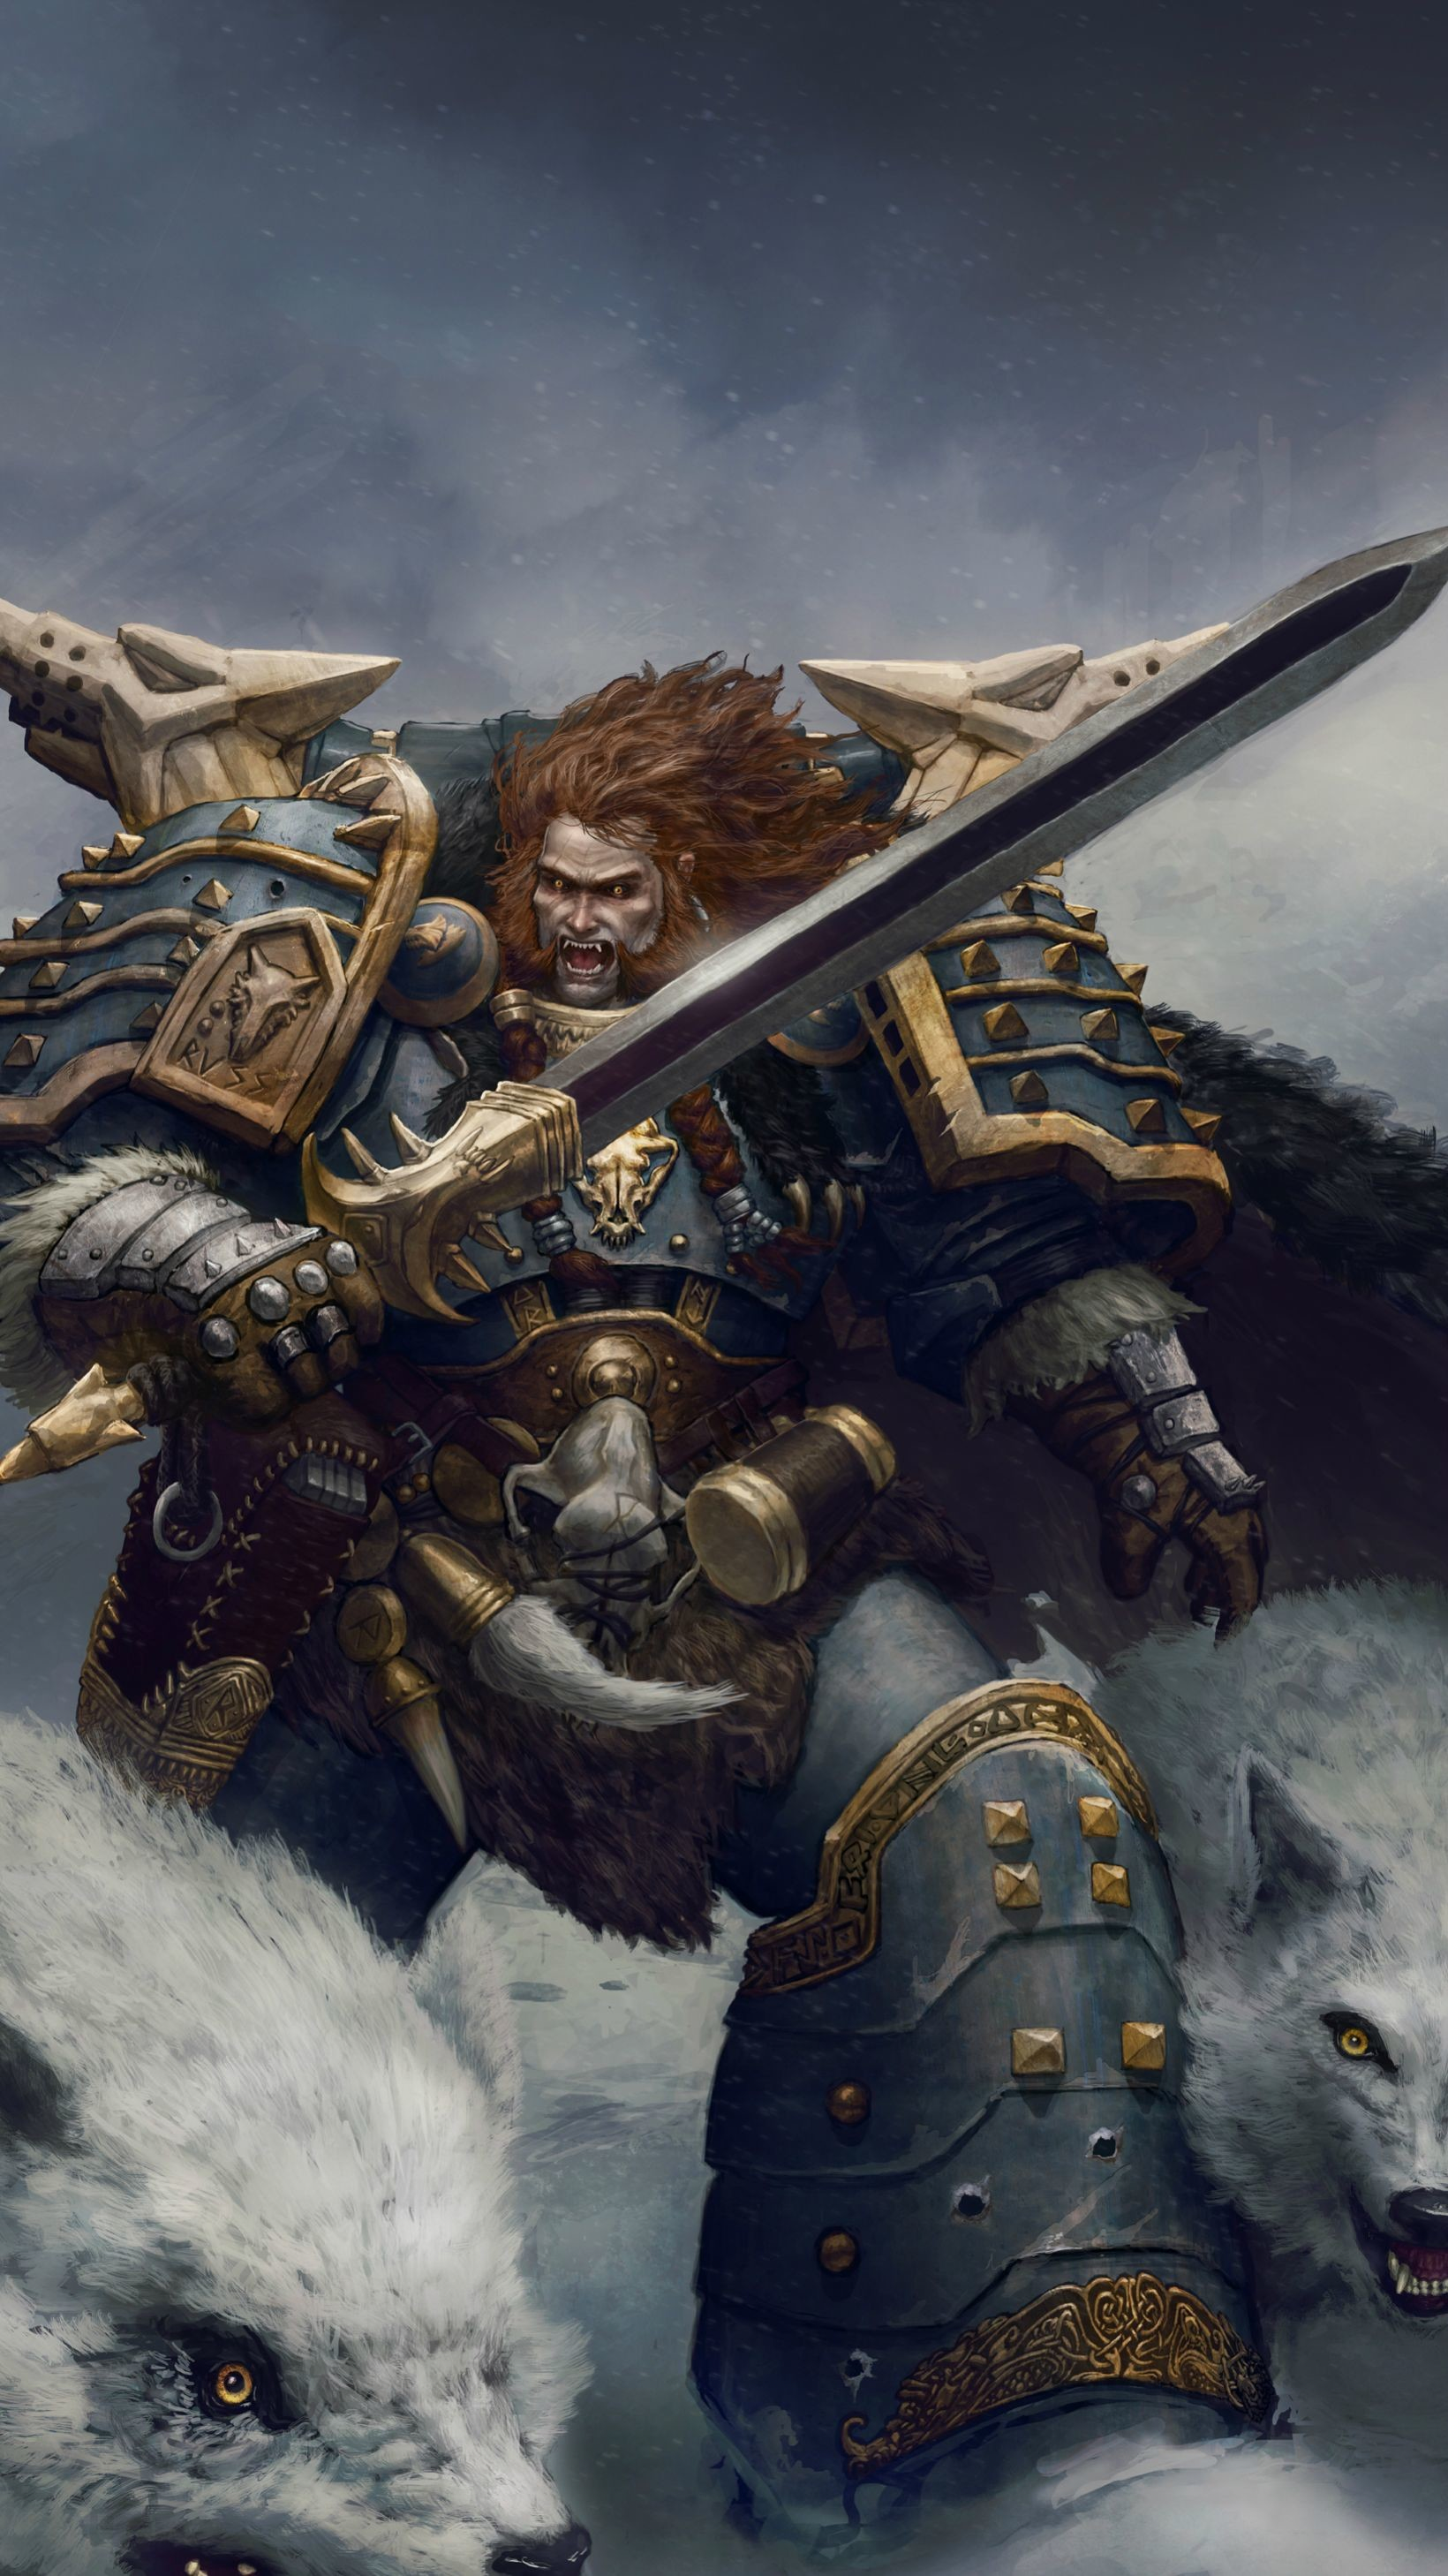 Warhammer 40K Mobile Phone Wallpapers. by theseanstrositySep 18 2015. Load  58 more images Grid view